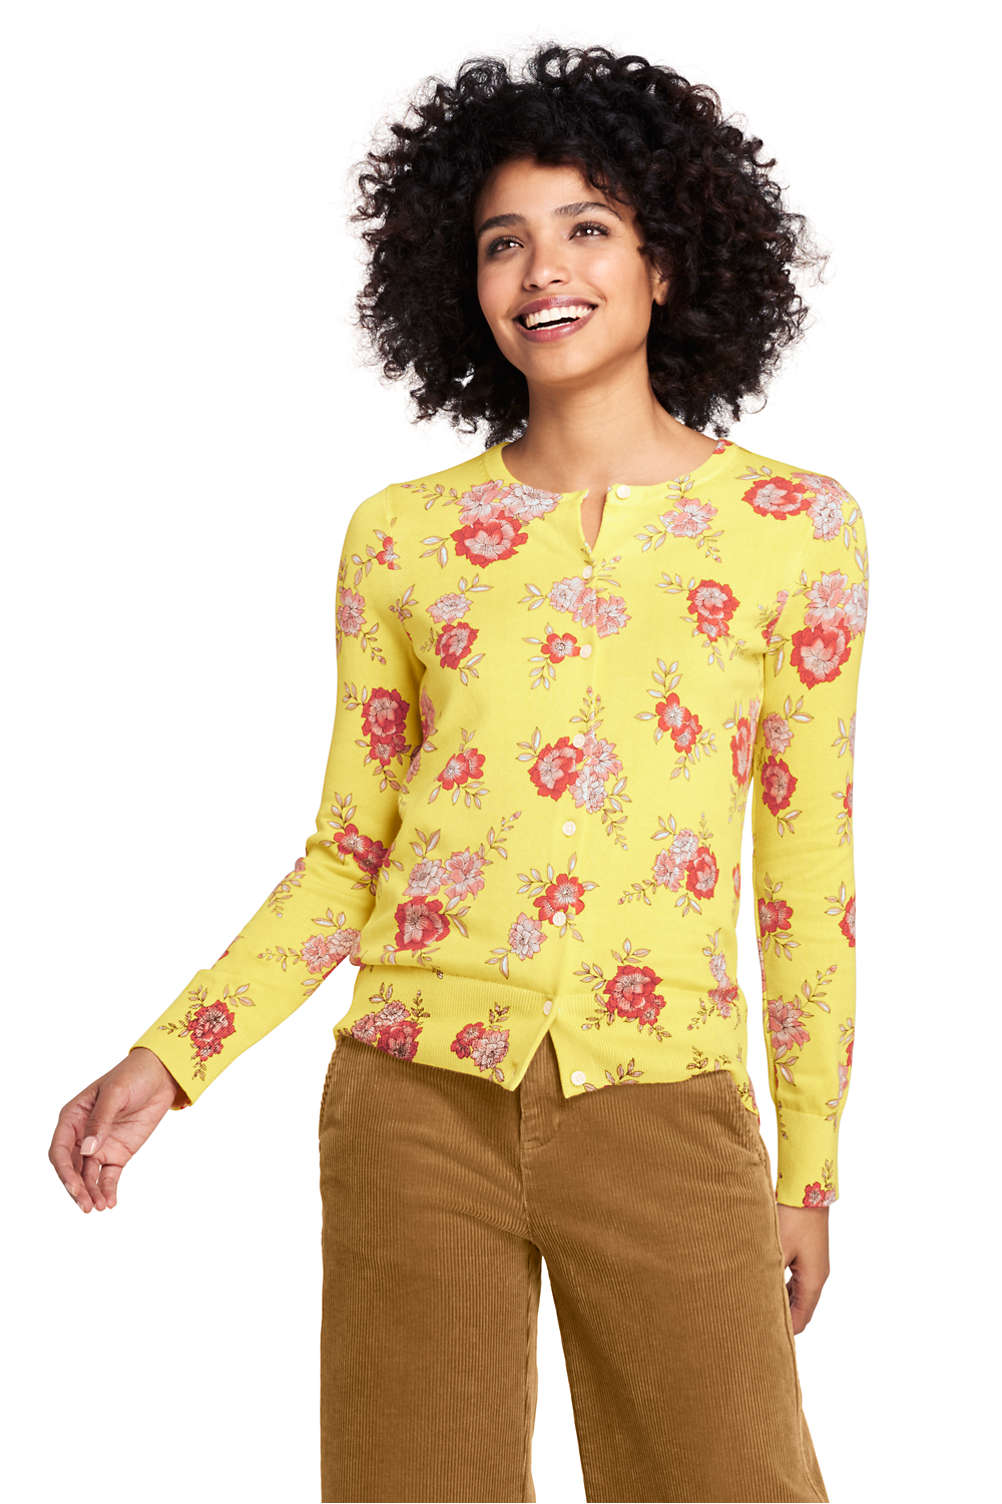 79457bc1055 Women's Supima Cotton Long Sleeve Cardigan Sweater - Print from Lands' End